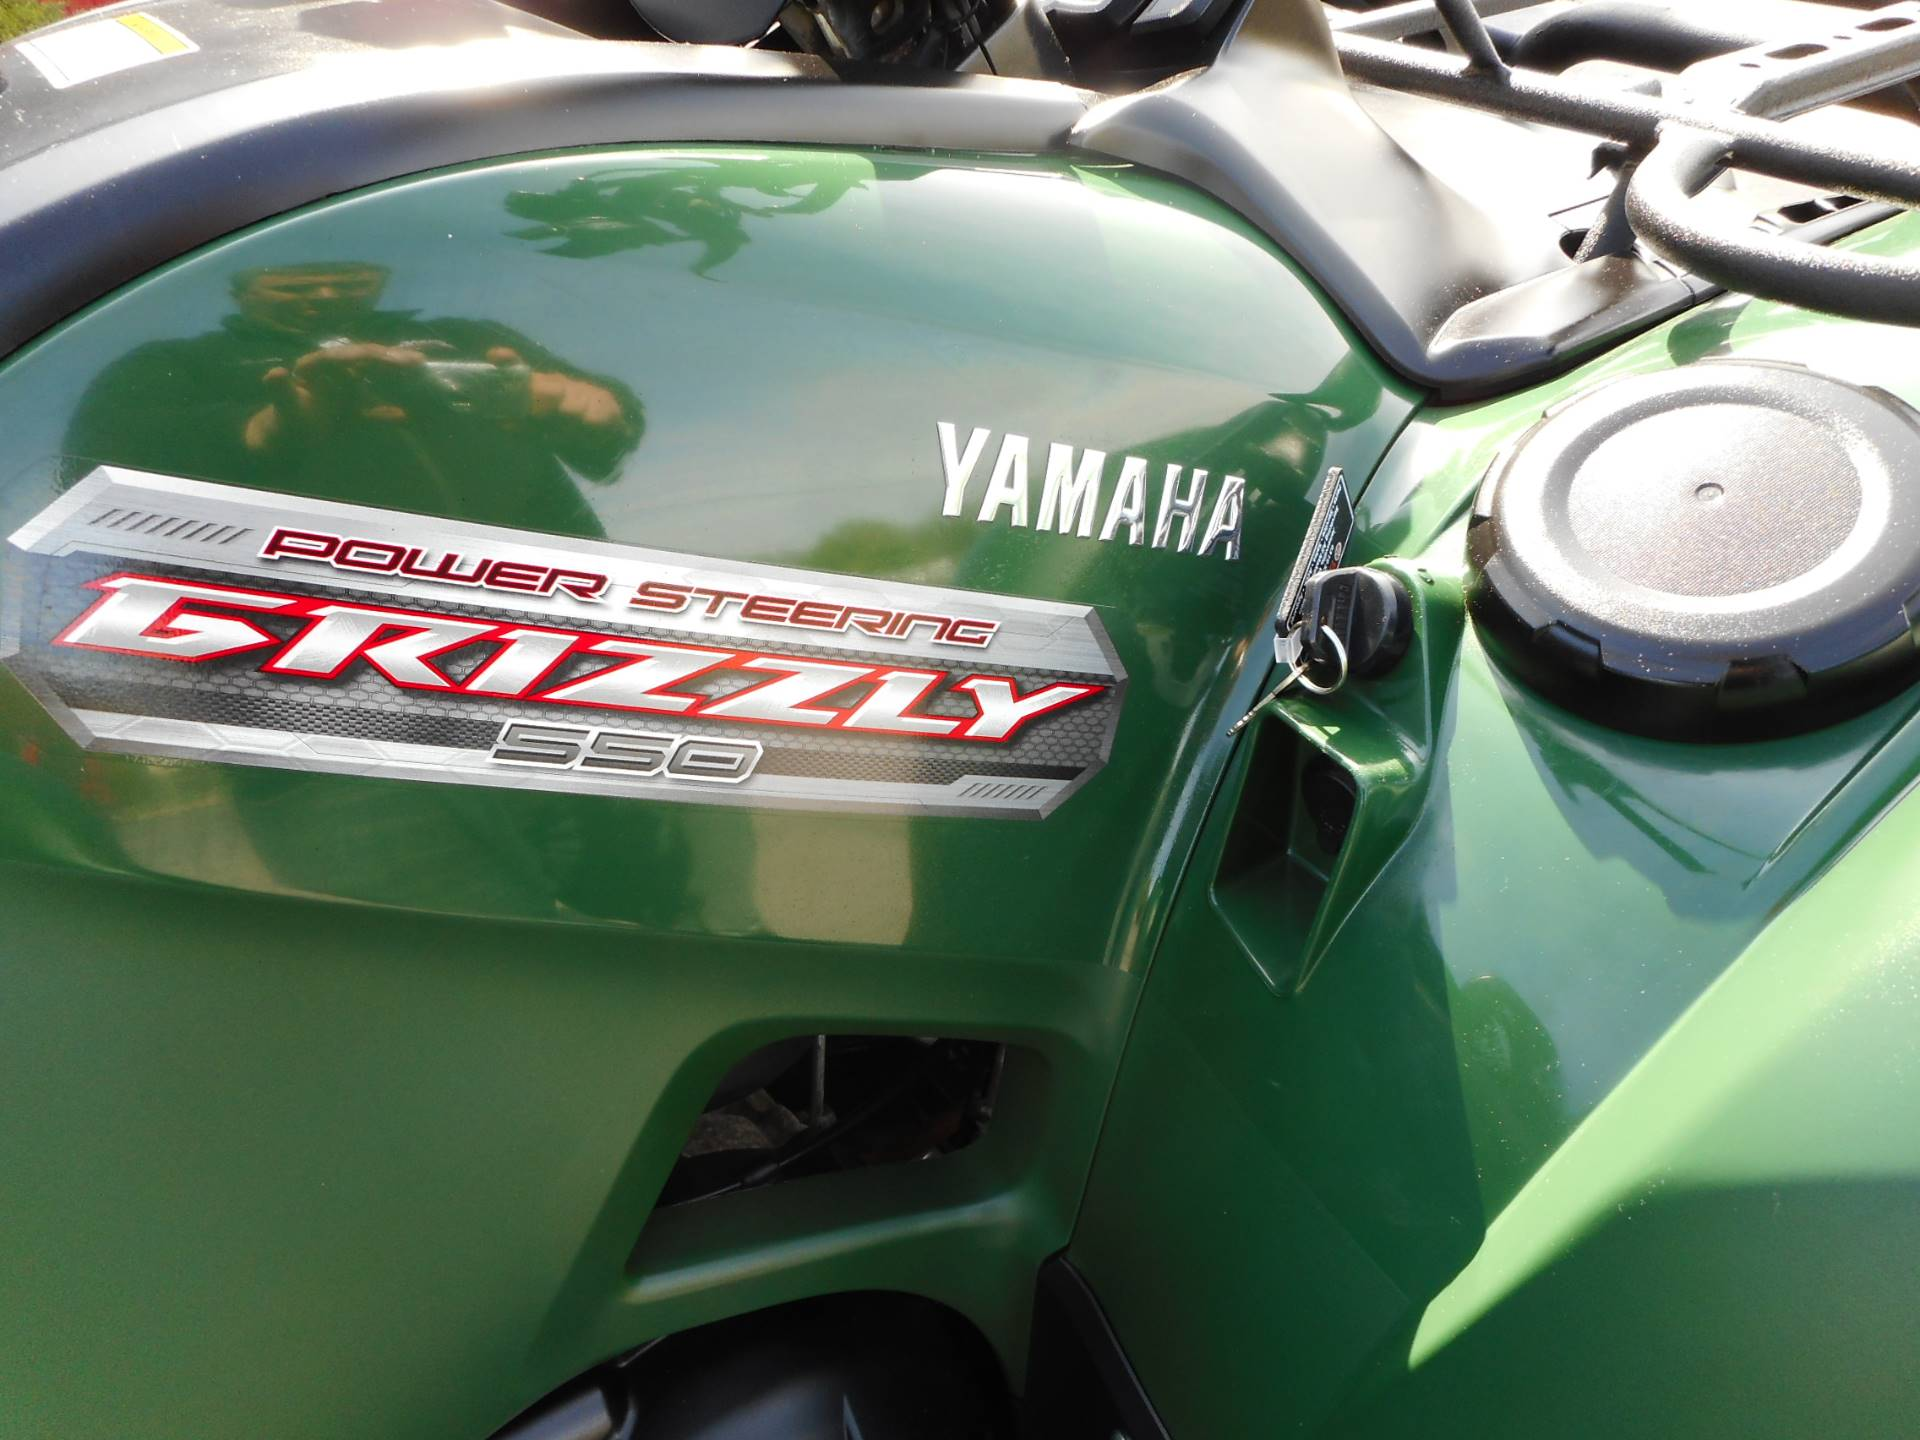 2012 Yamaha Grizzly 550 FI Auto. 4x4 EPS in Janesville, Wisconsin